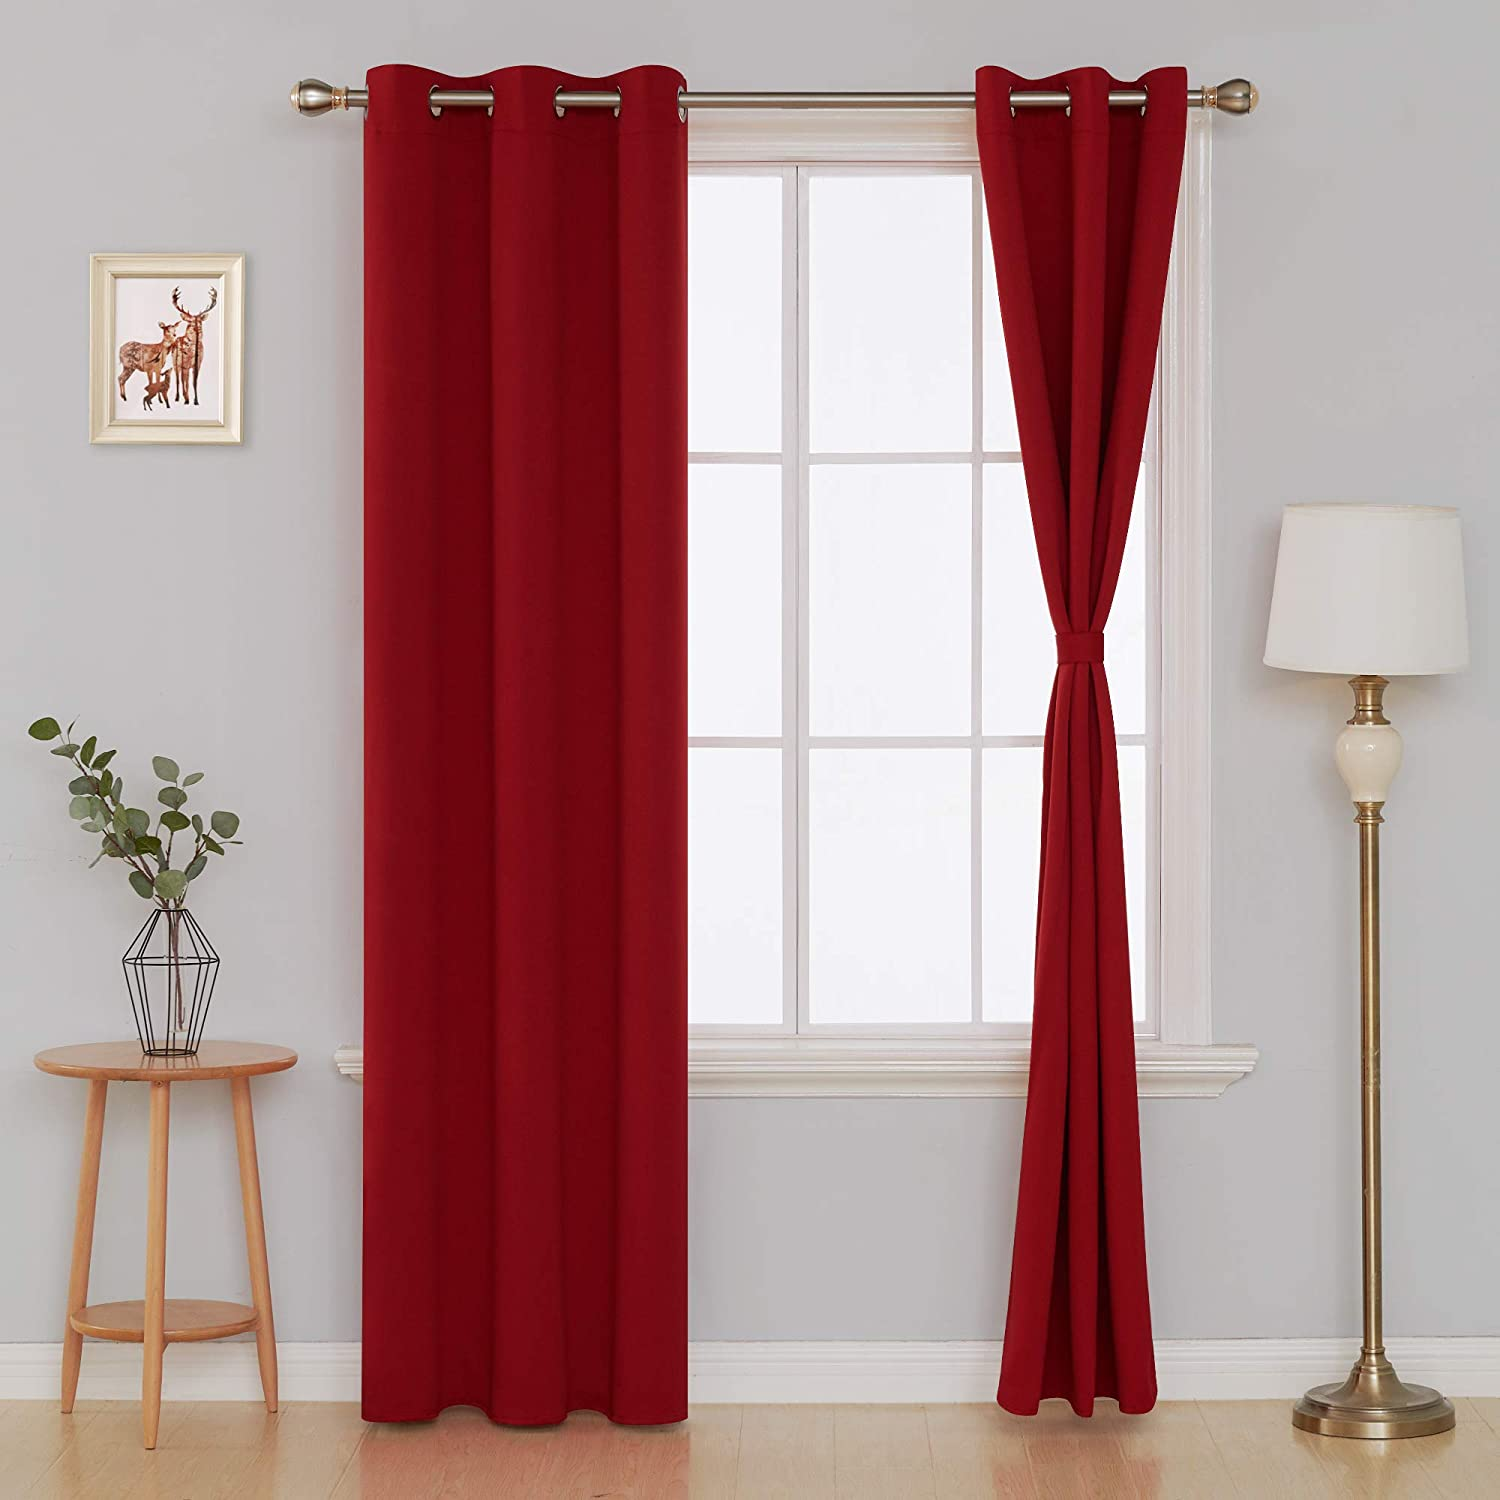 Deconovo Blackout Curtains for Bedroom Set of 2 Panels with Tiebacks, 38x84 Inch Grommet Top, Red